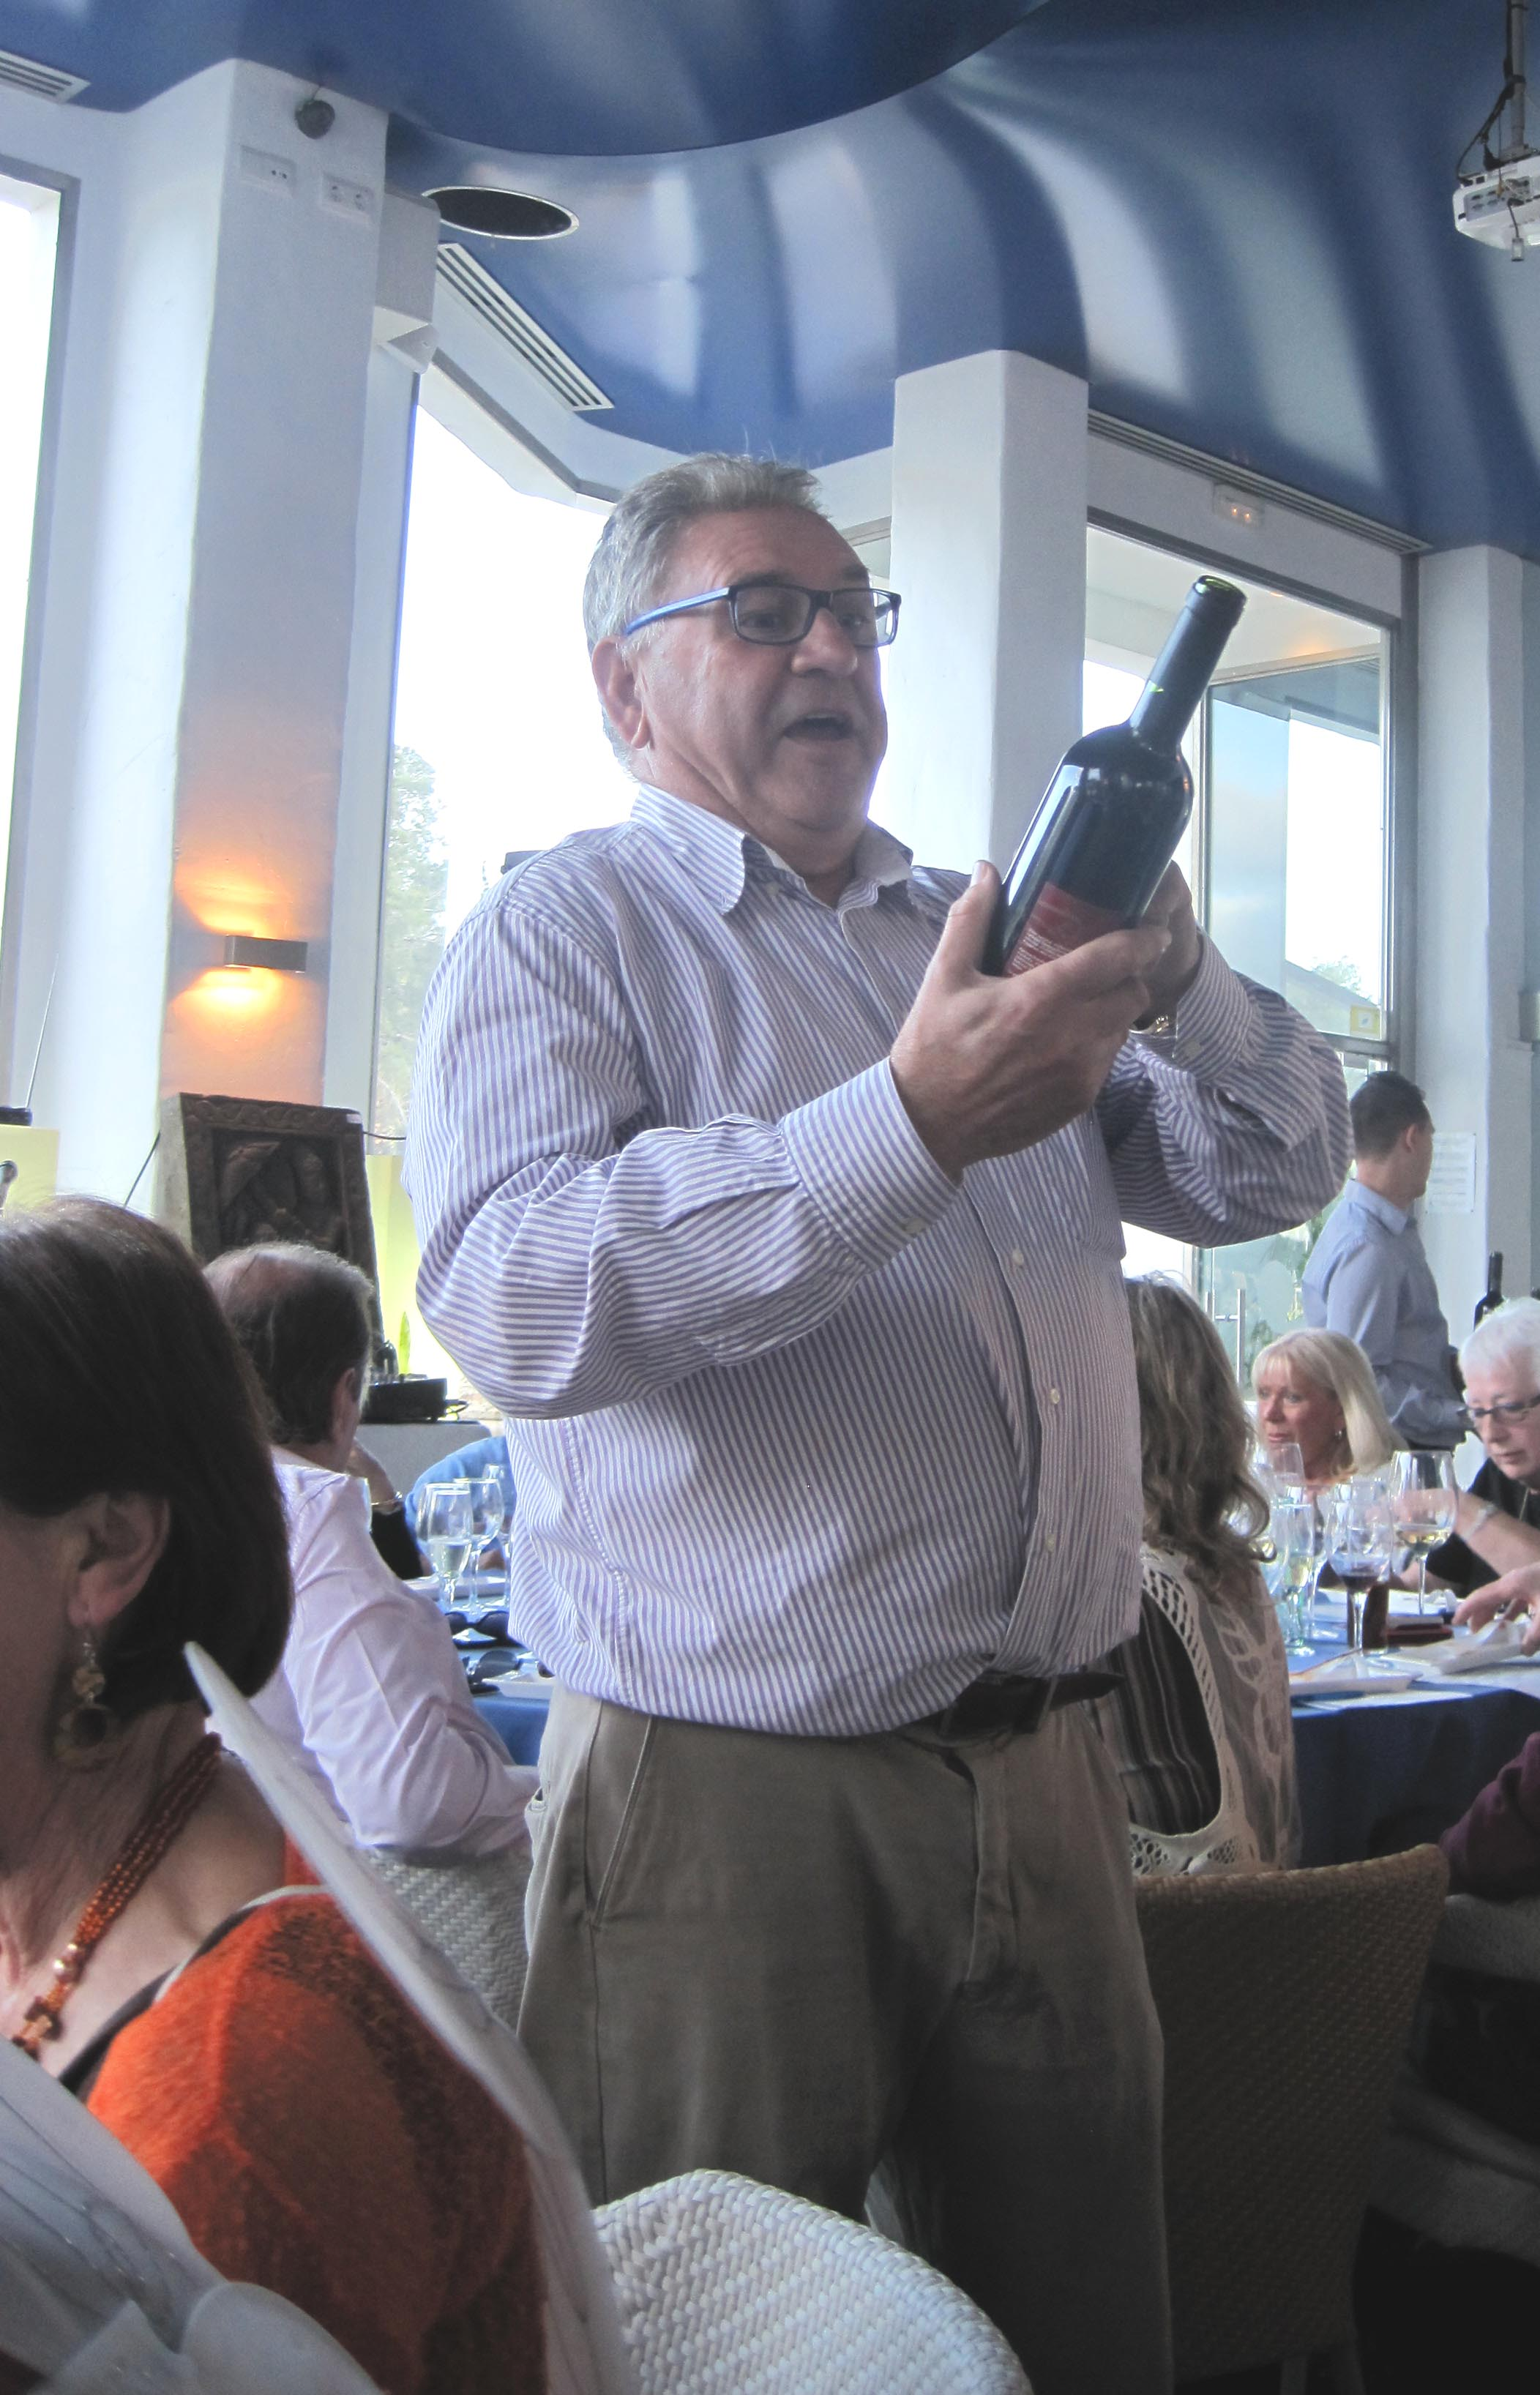 vicente-presents-his-wine